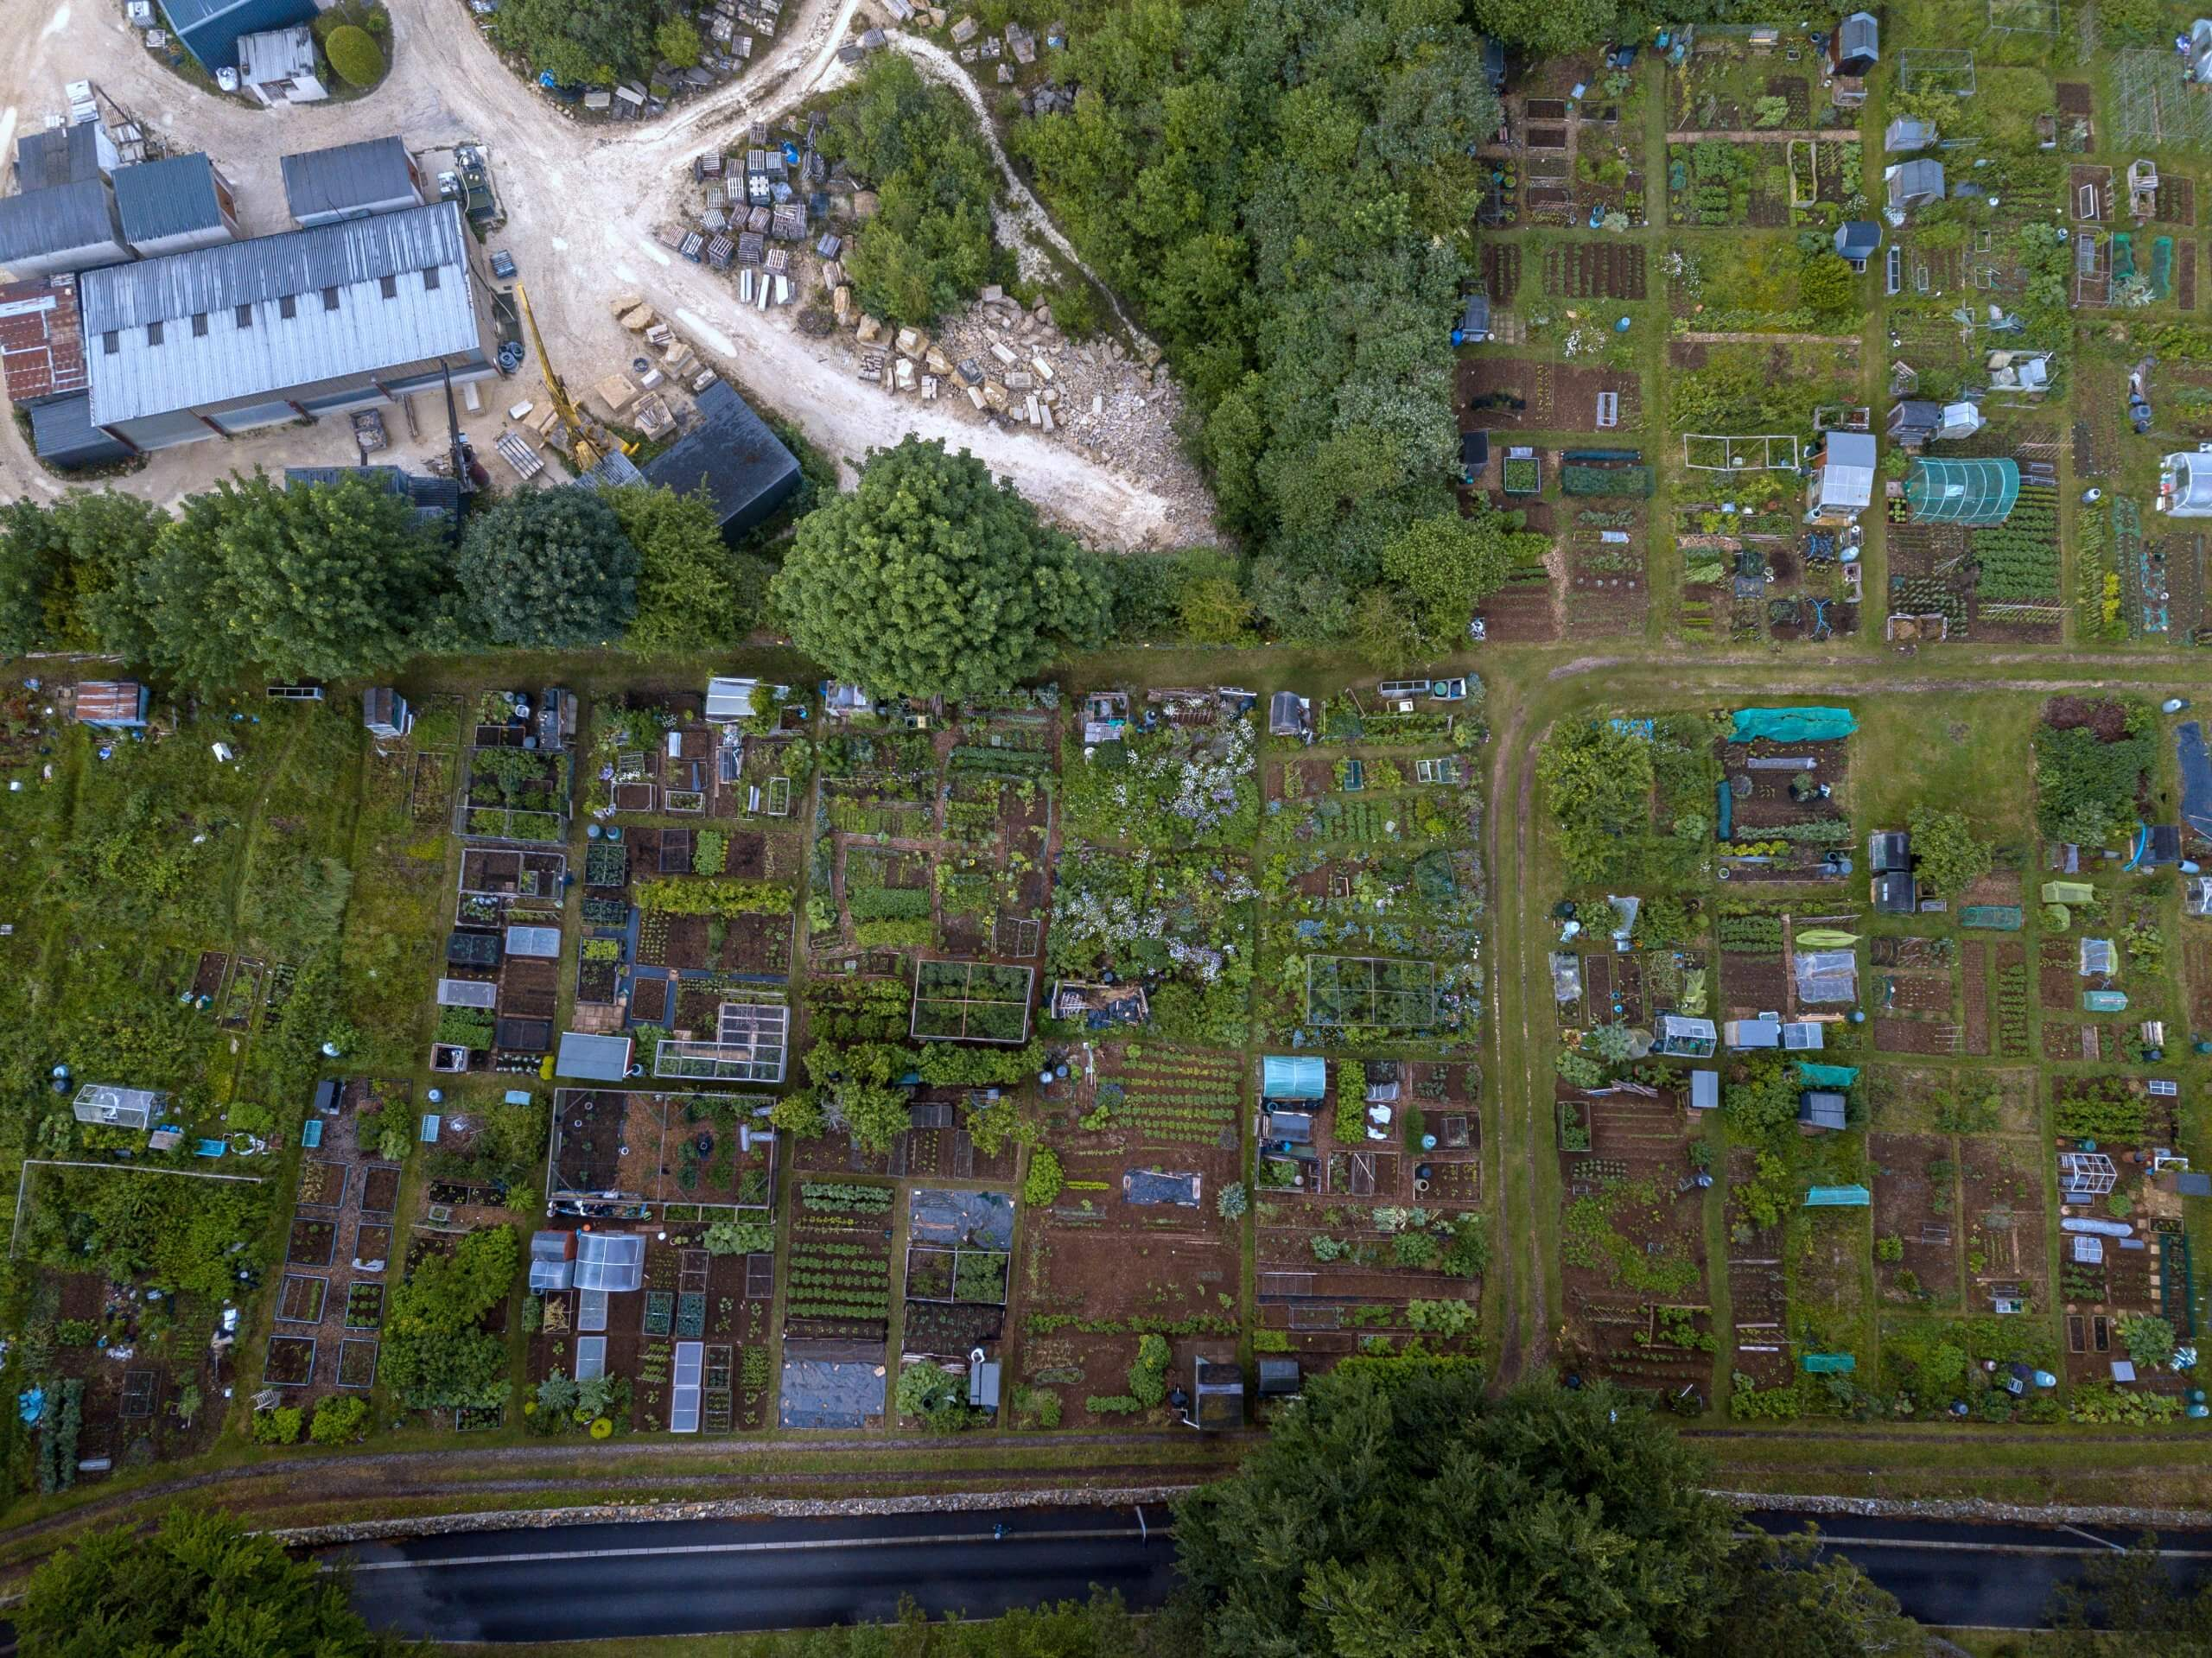 Combe Down allotments 2019